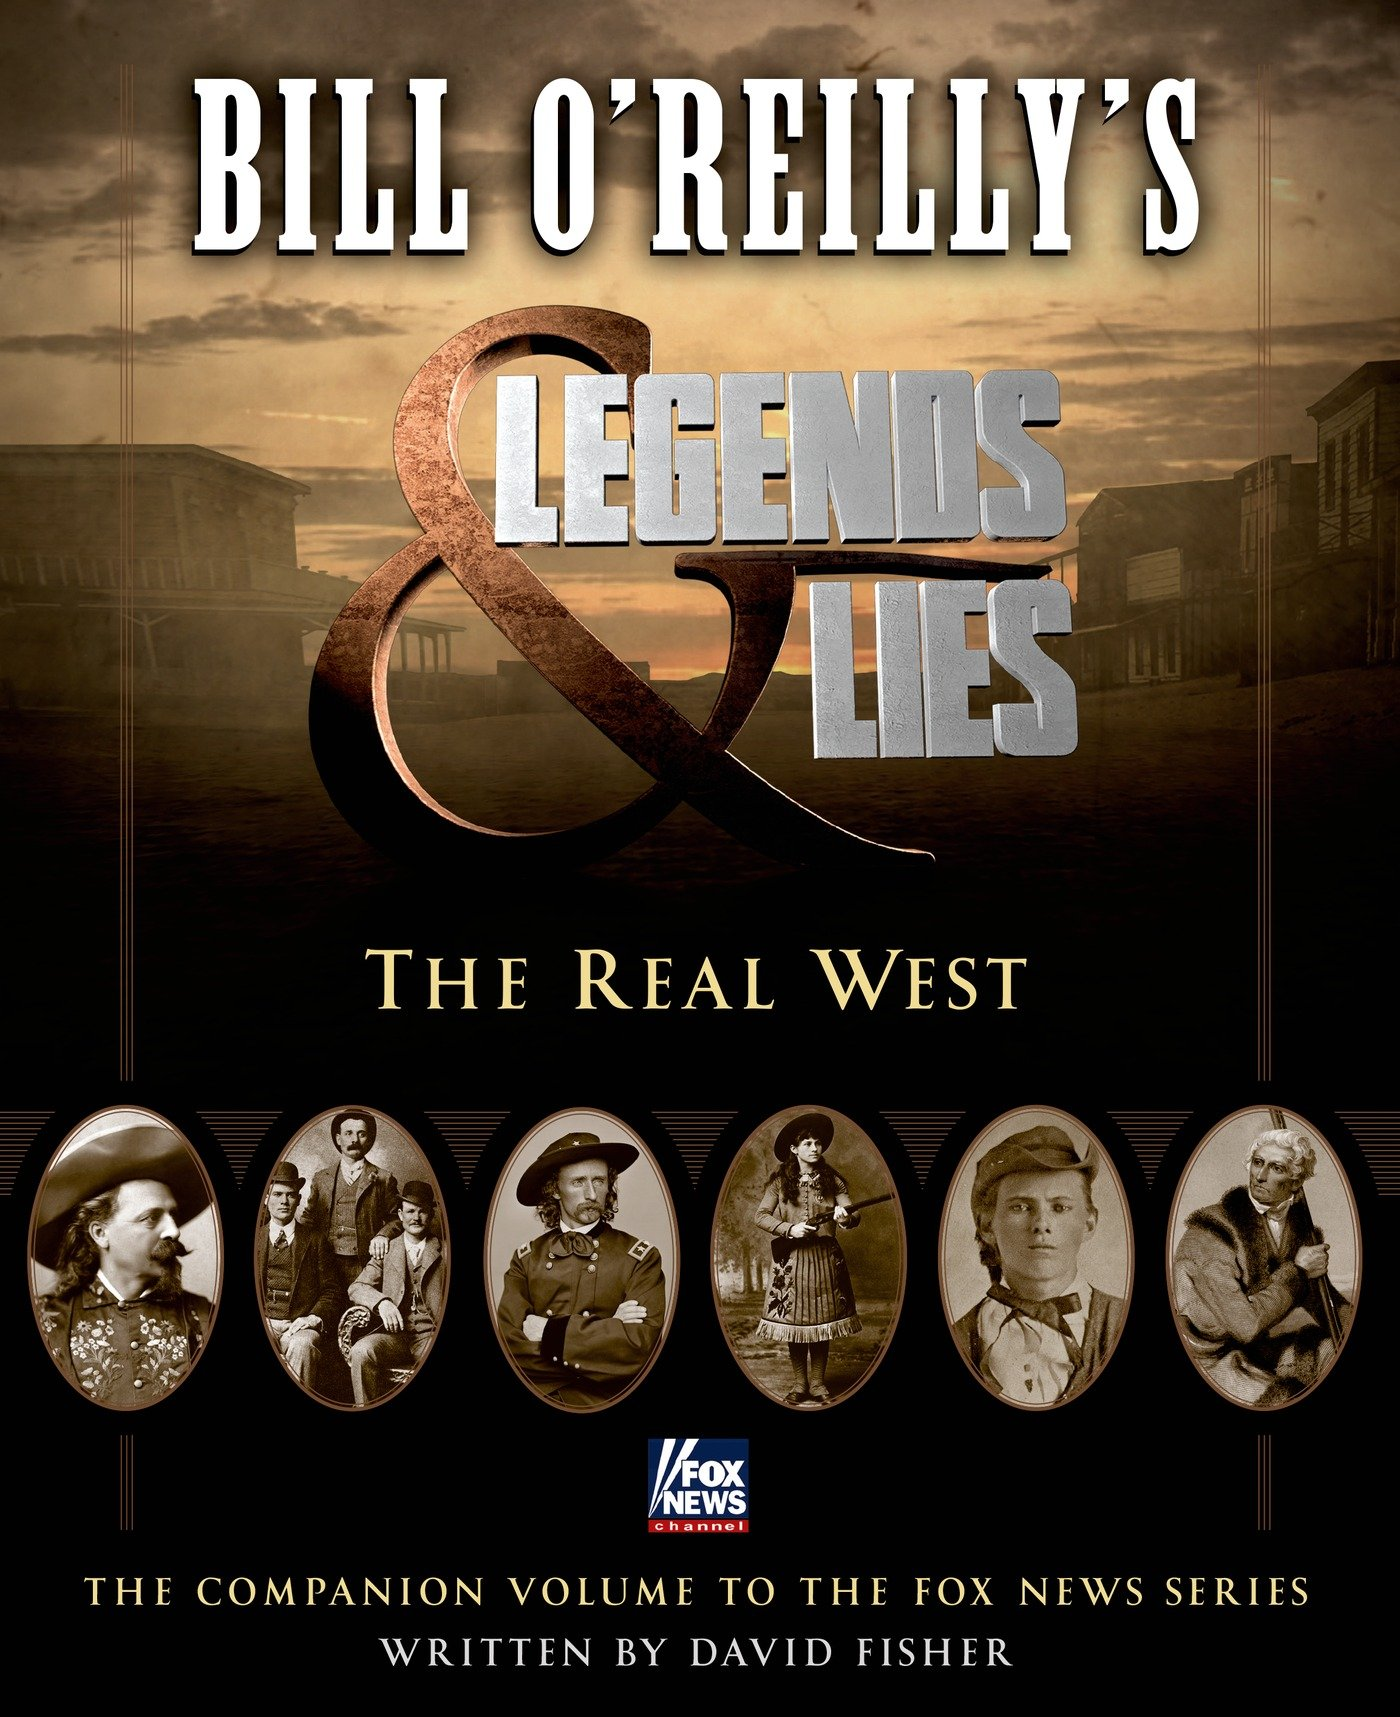 BILL O'REILLY'S: THE REAL WEST